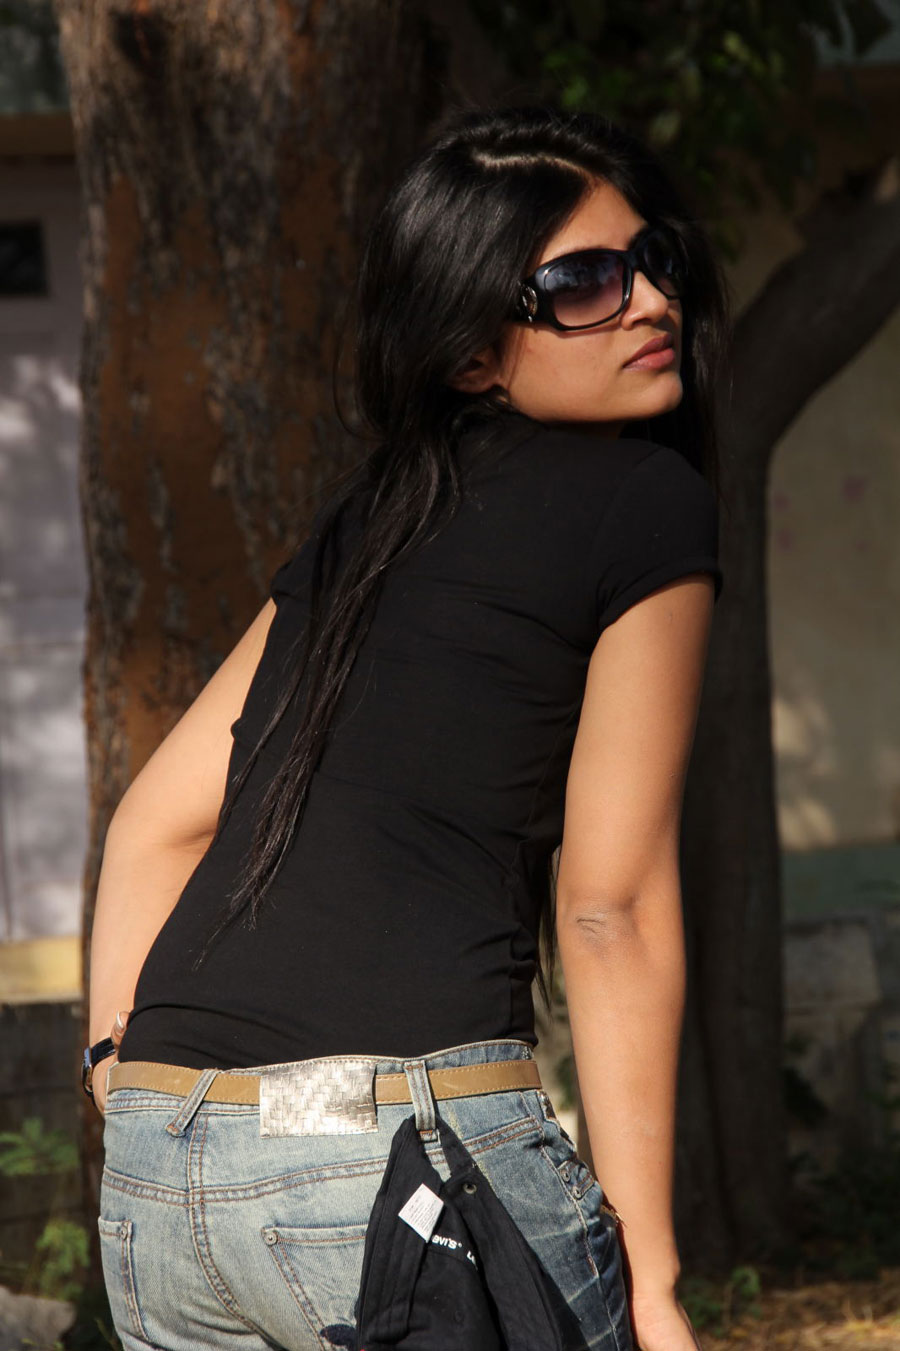 Shwetha Pandit from Theater Lo Movie Photo Gallery Swetha22